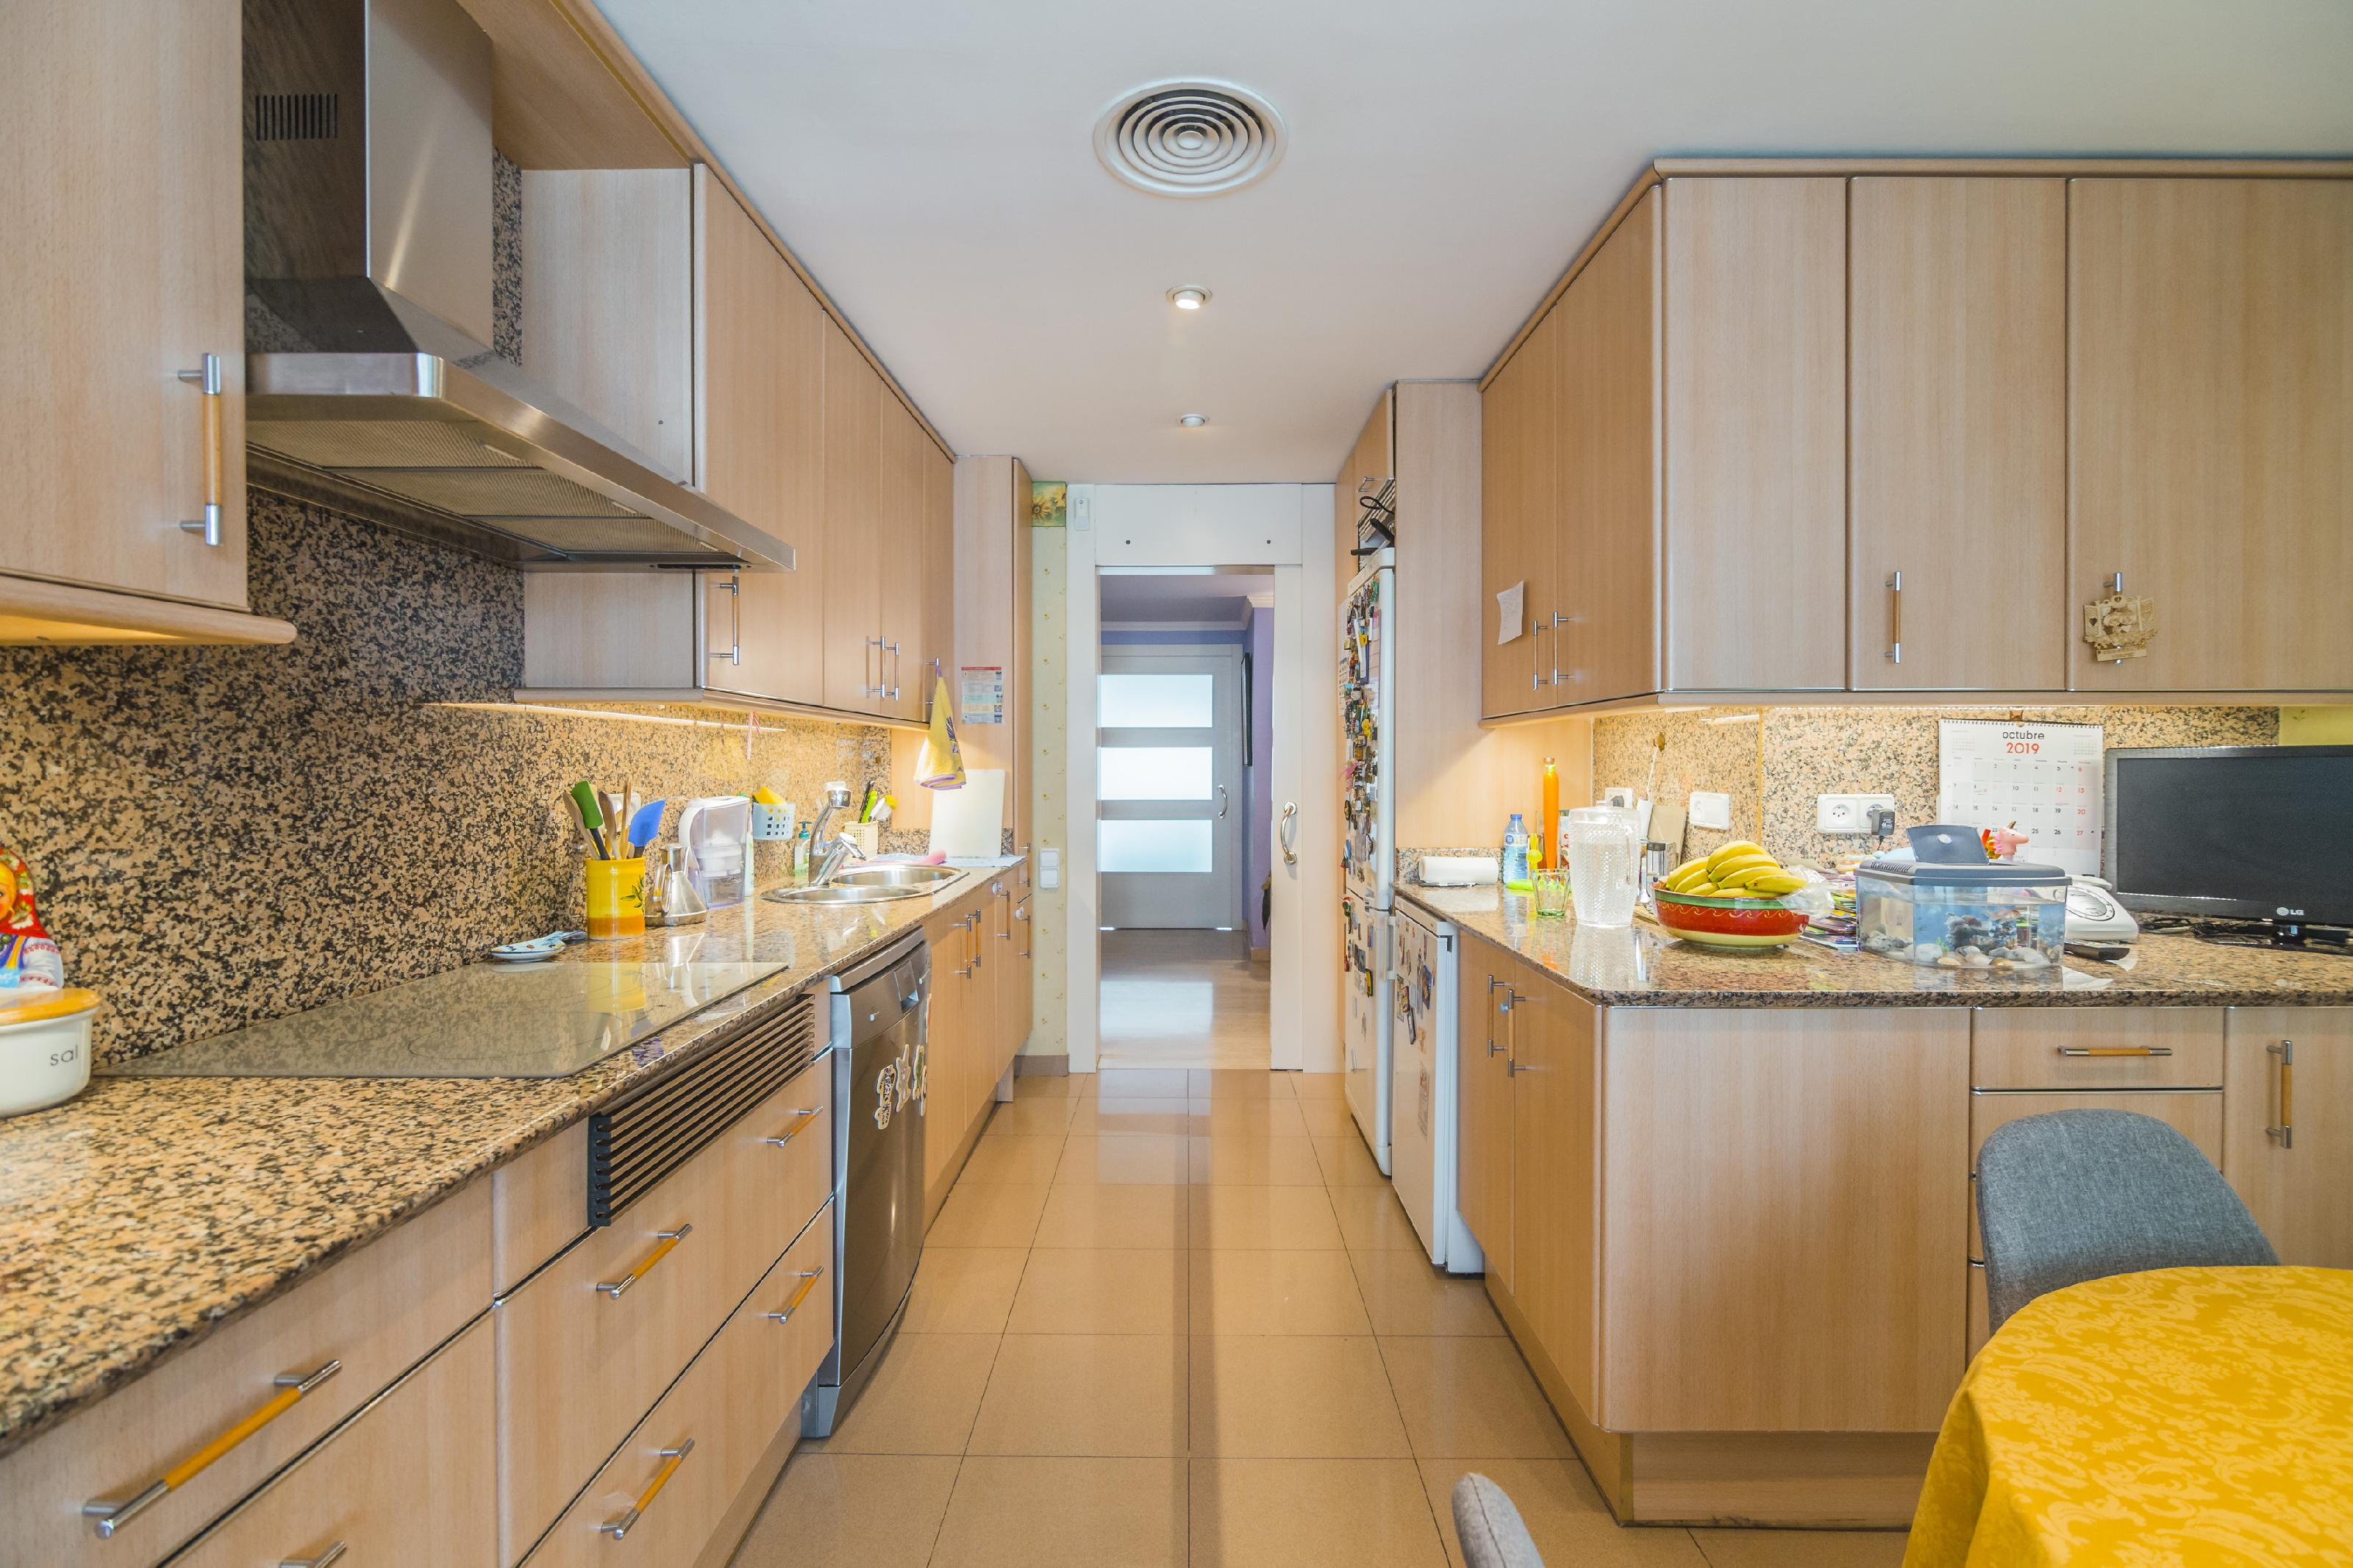 232637 Penthouse for sale in Sarrià-Sant Gervasi, Sant Gervasi-Galvany 5